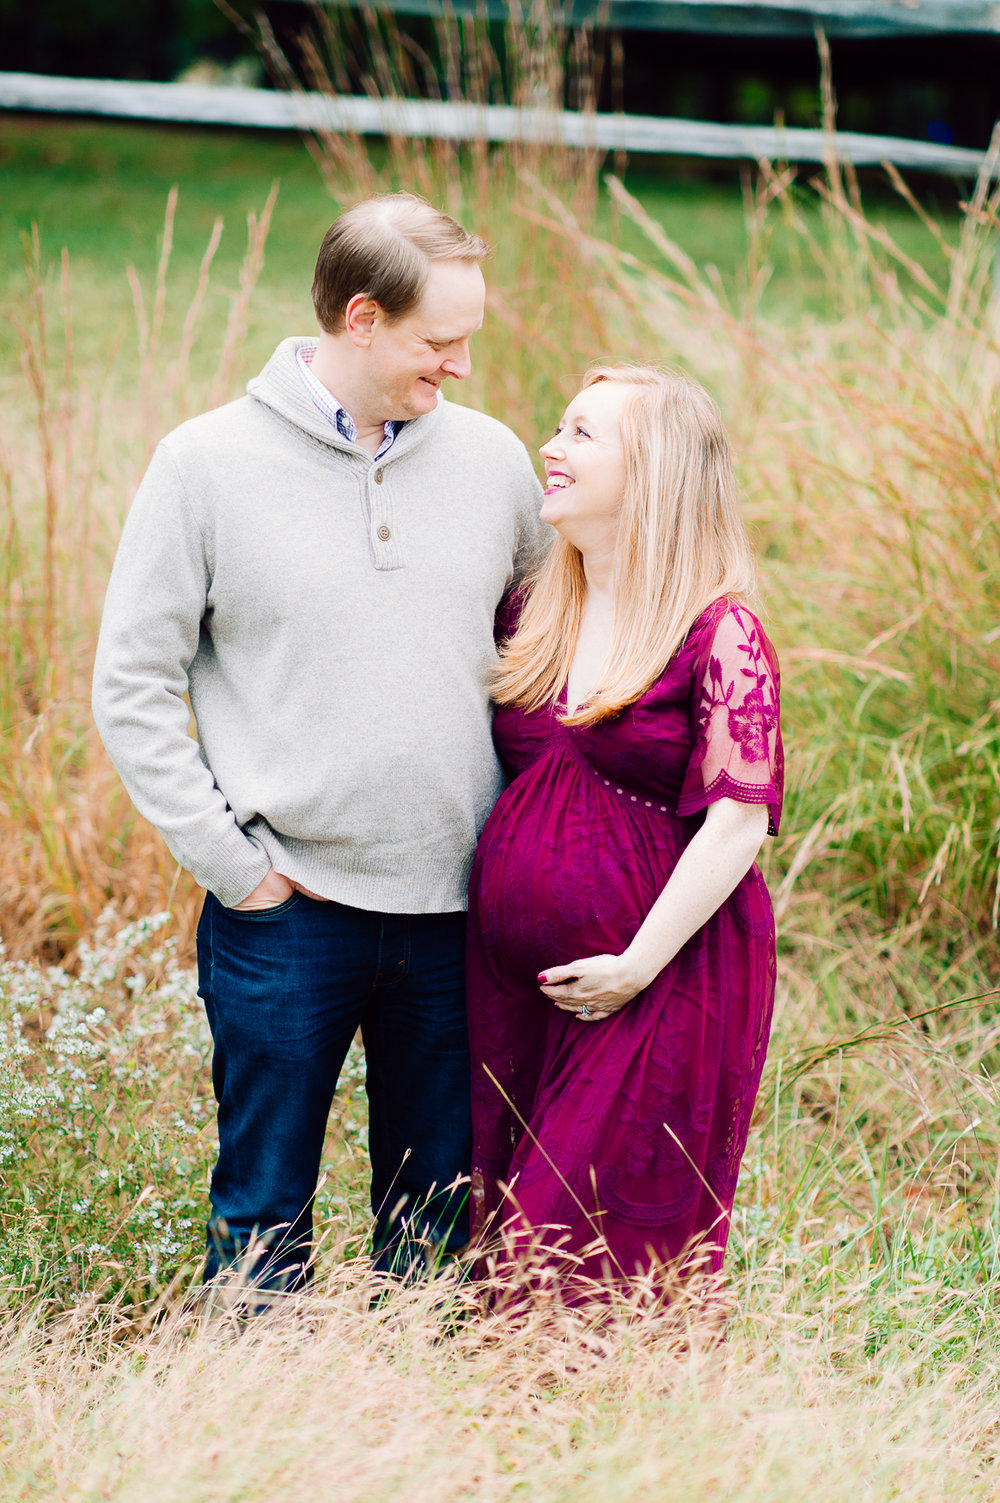 maternity_fallphotos_fredericksburgphotographer_leesylvania_youseephotography_Heather (33).jpg